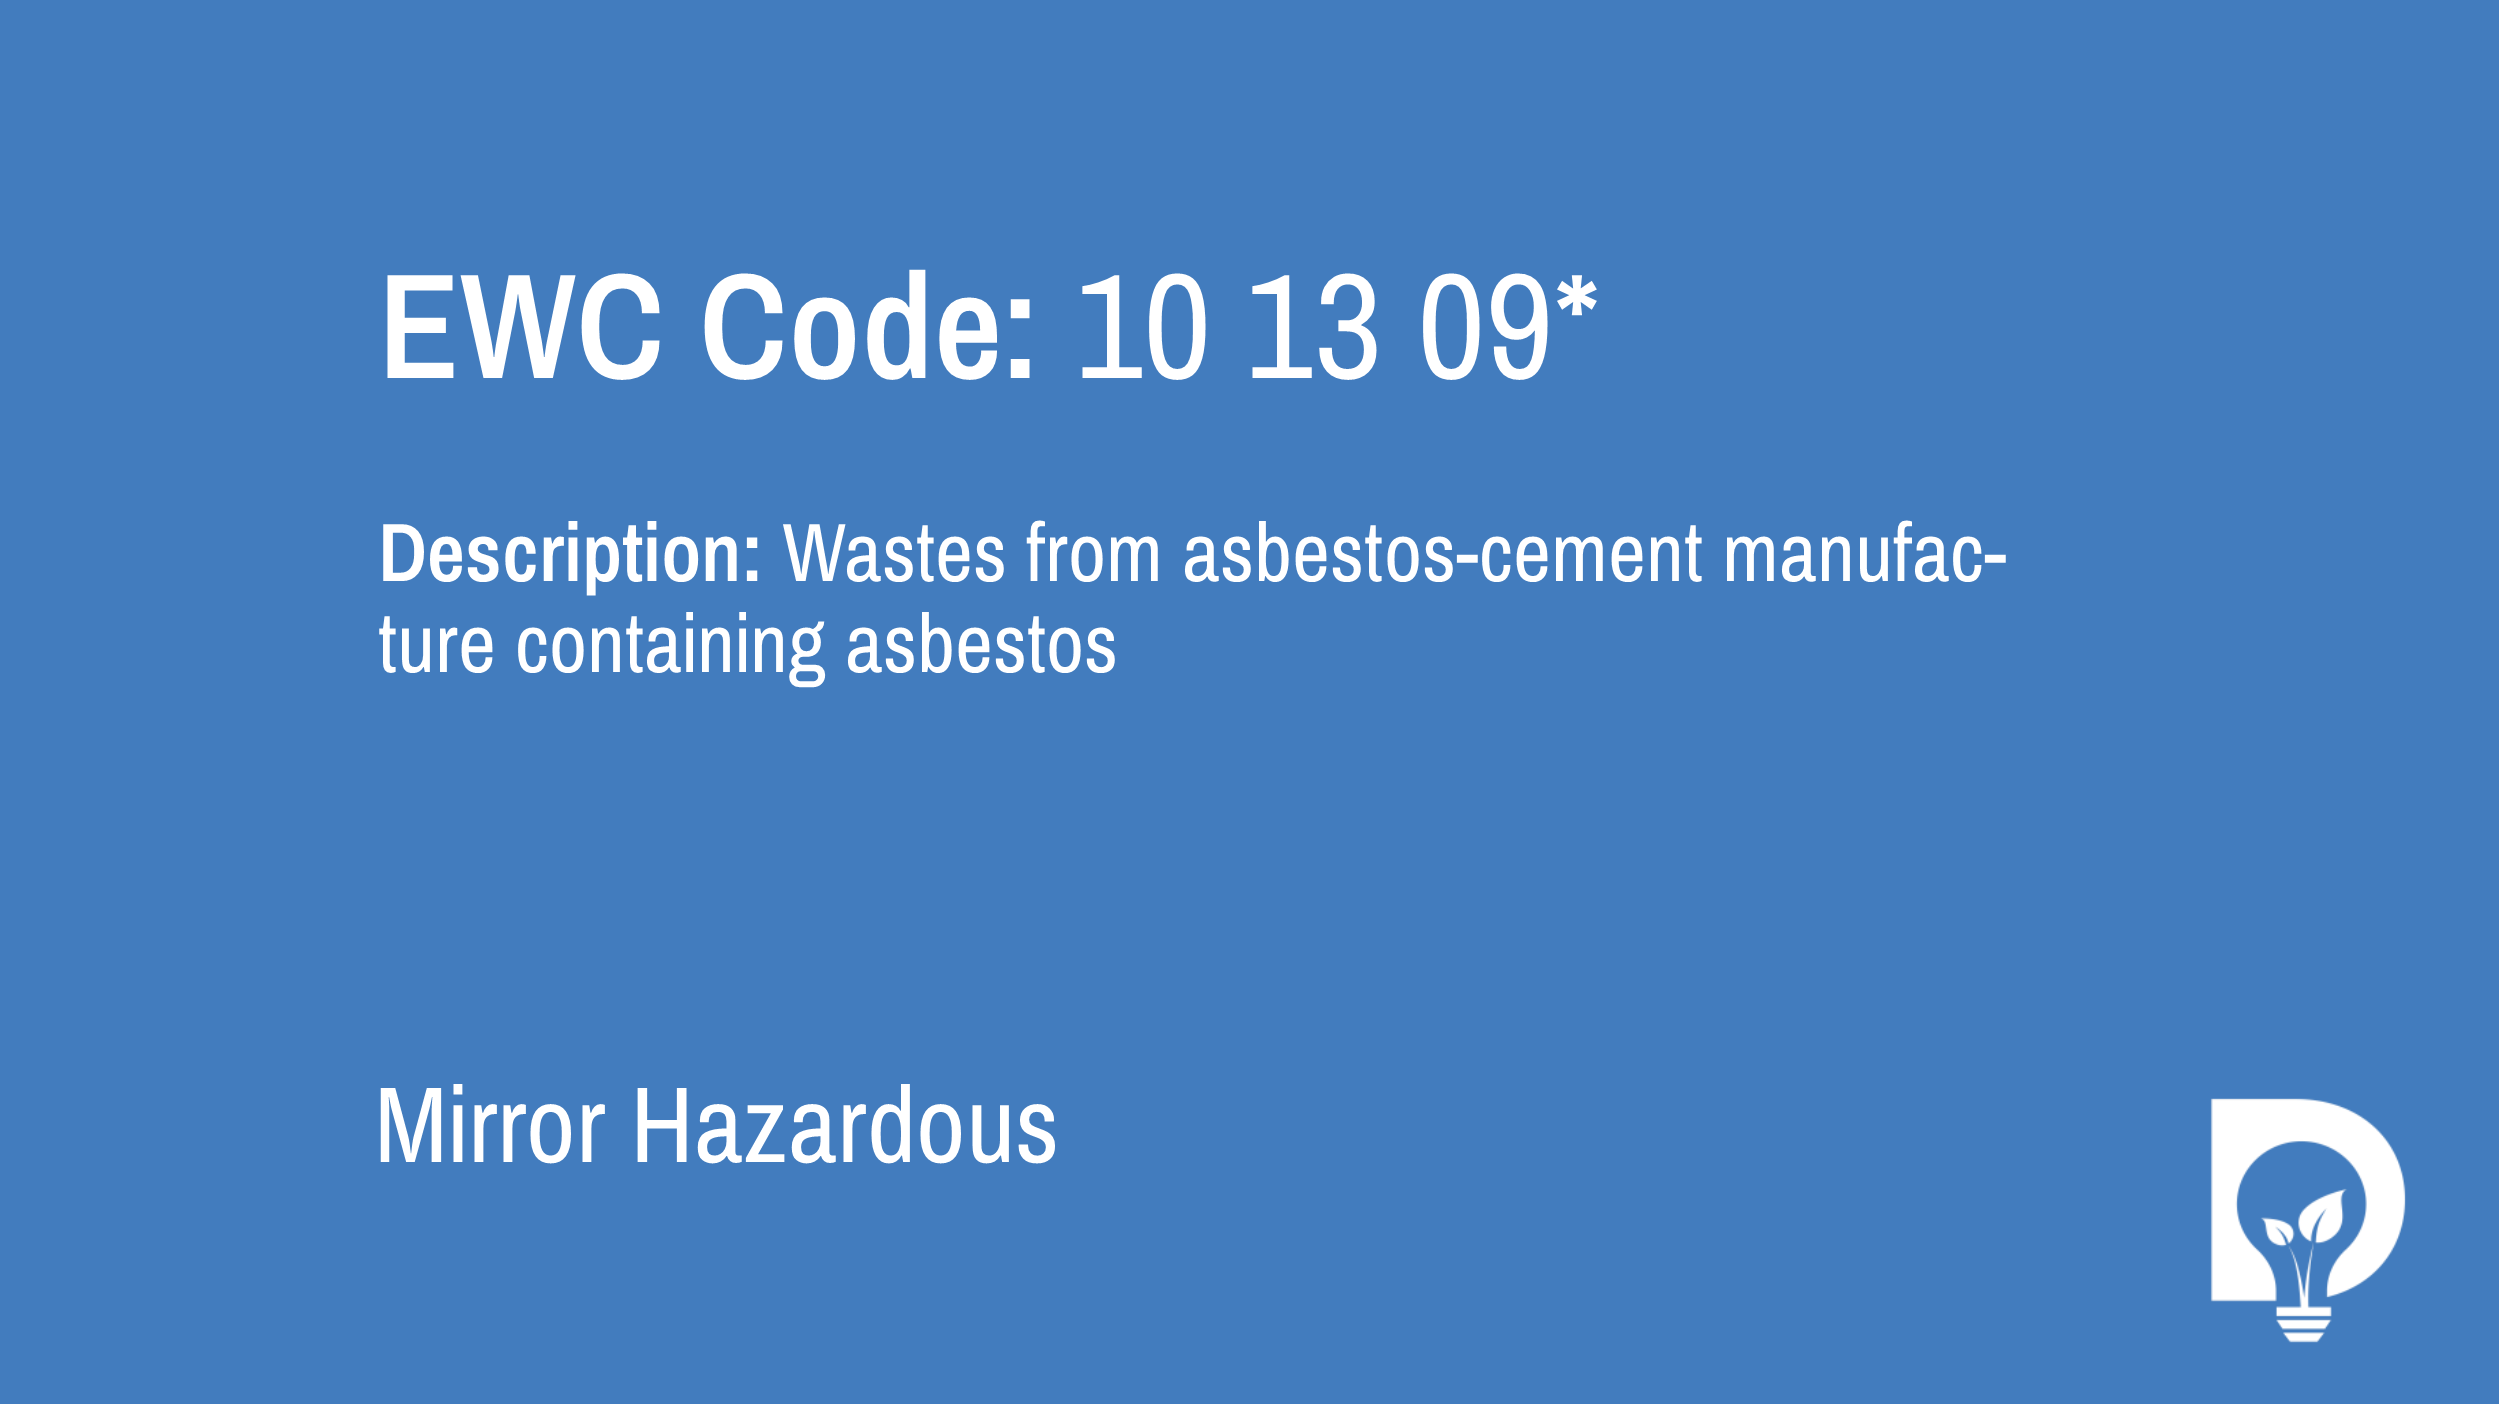 EWC Code: 10 13 09* - wastes from asbestos-cement manufacture containing asbestos. Type: Mirror Hazardous. Image by Dsposal